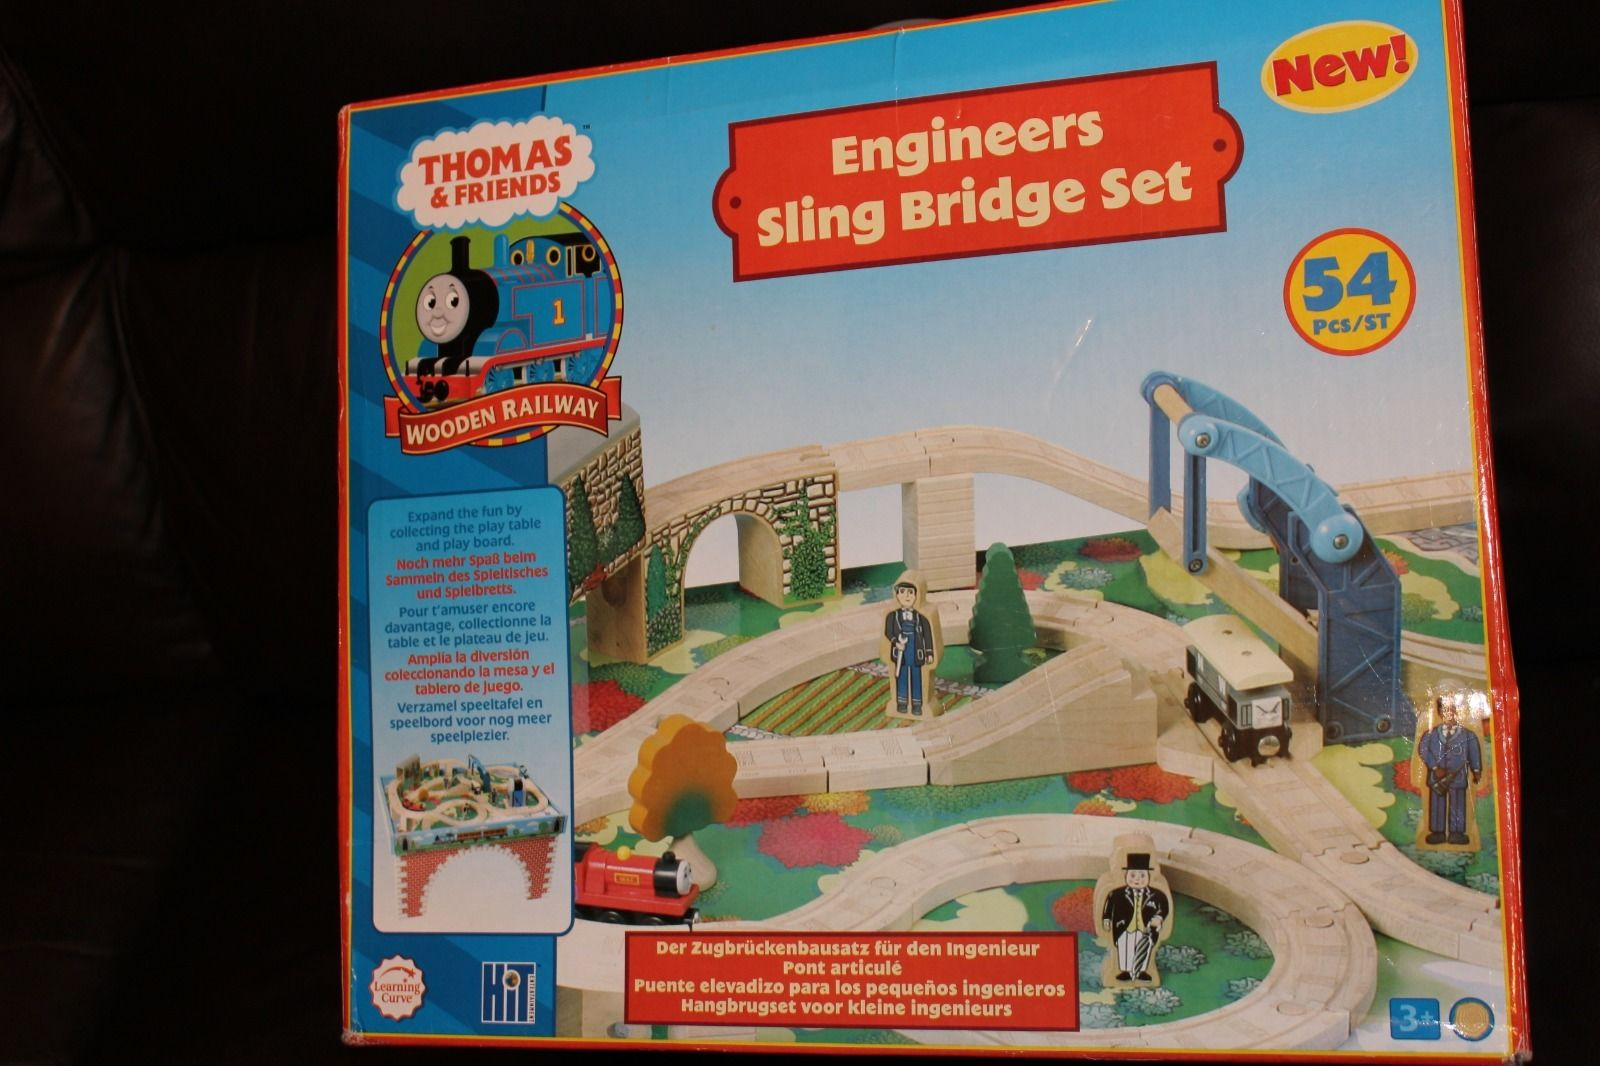 Engineeru0027s Sling Bridge Set | Thomas Wood Wikia | FANDOM powered by Wikia : thomas wooden train table set - pezcame.com